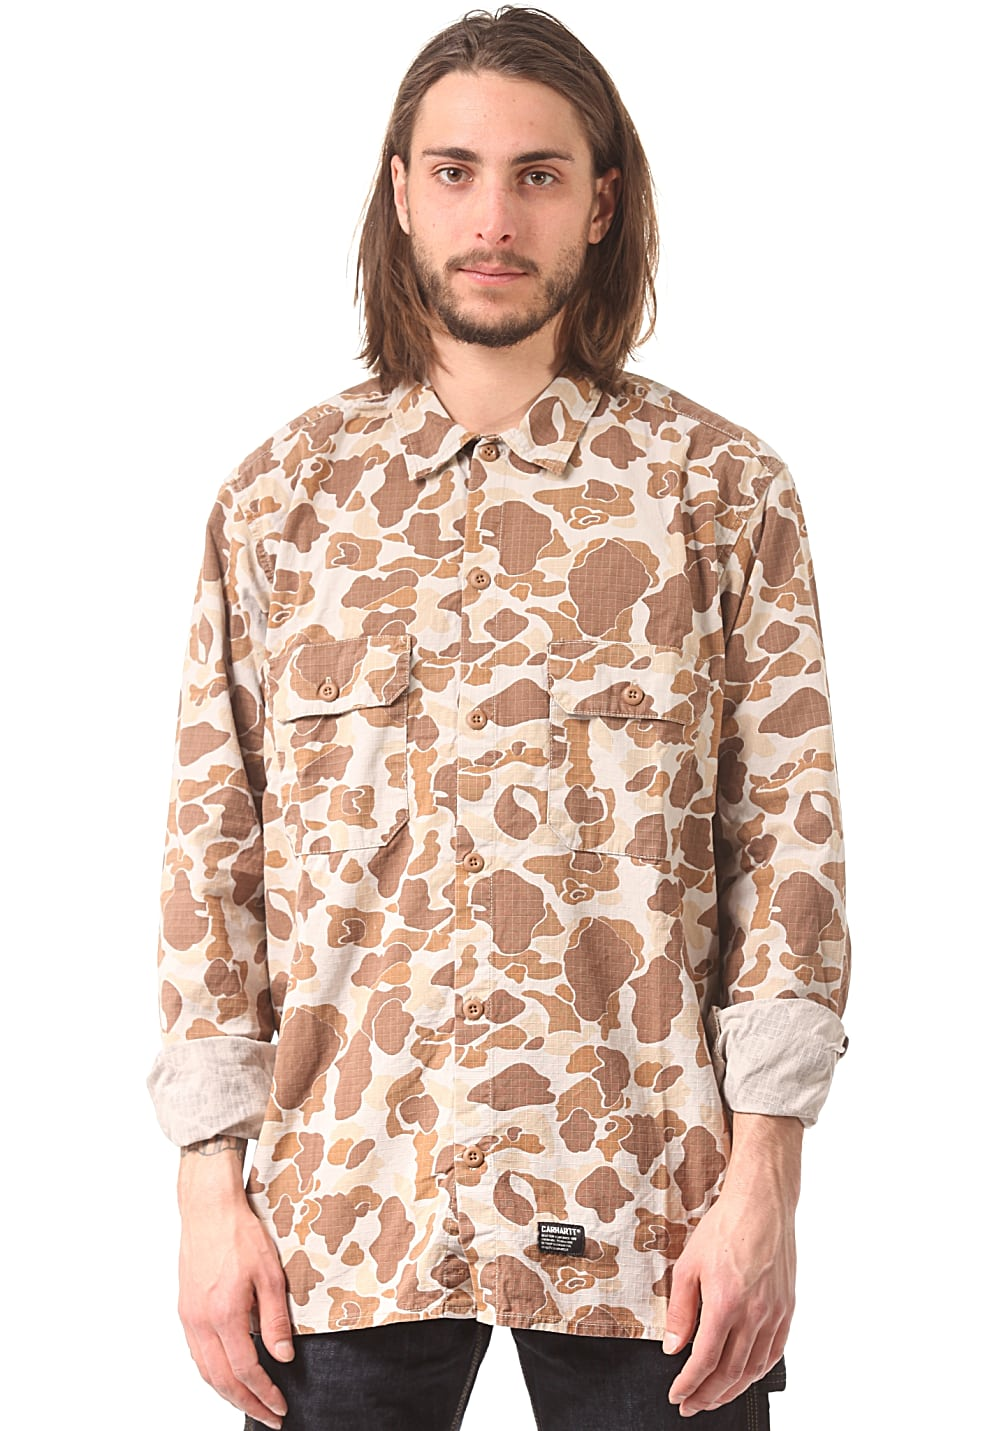 Carhartt WIP Mission L/S Hemd - Camouflage - M